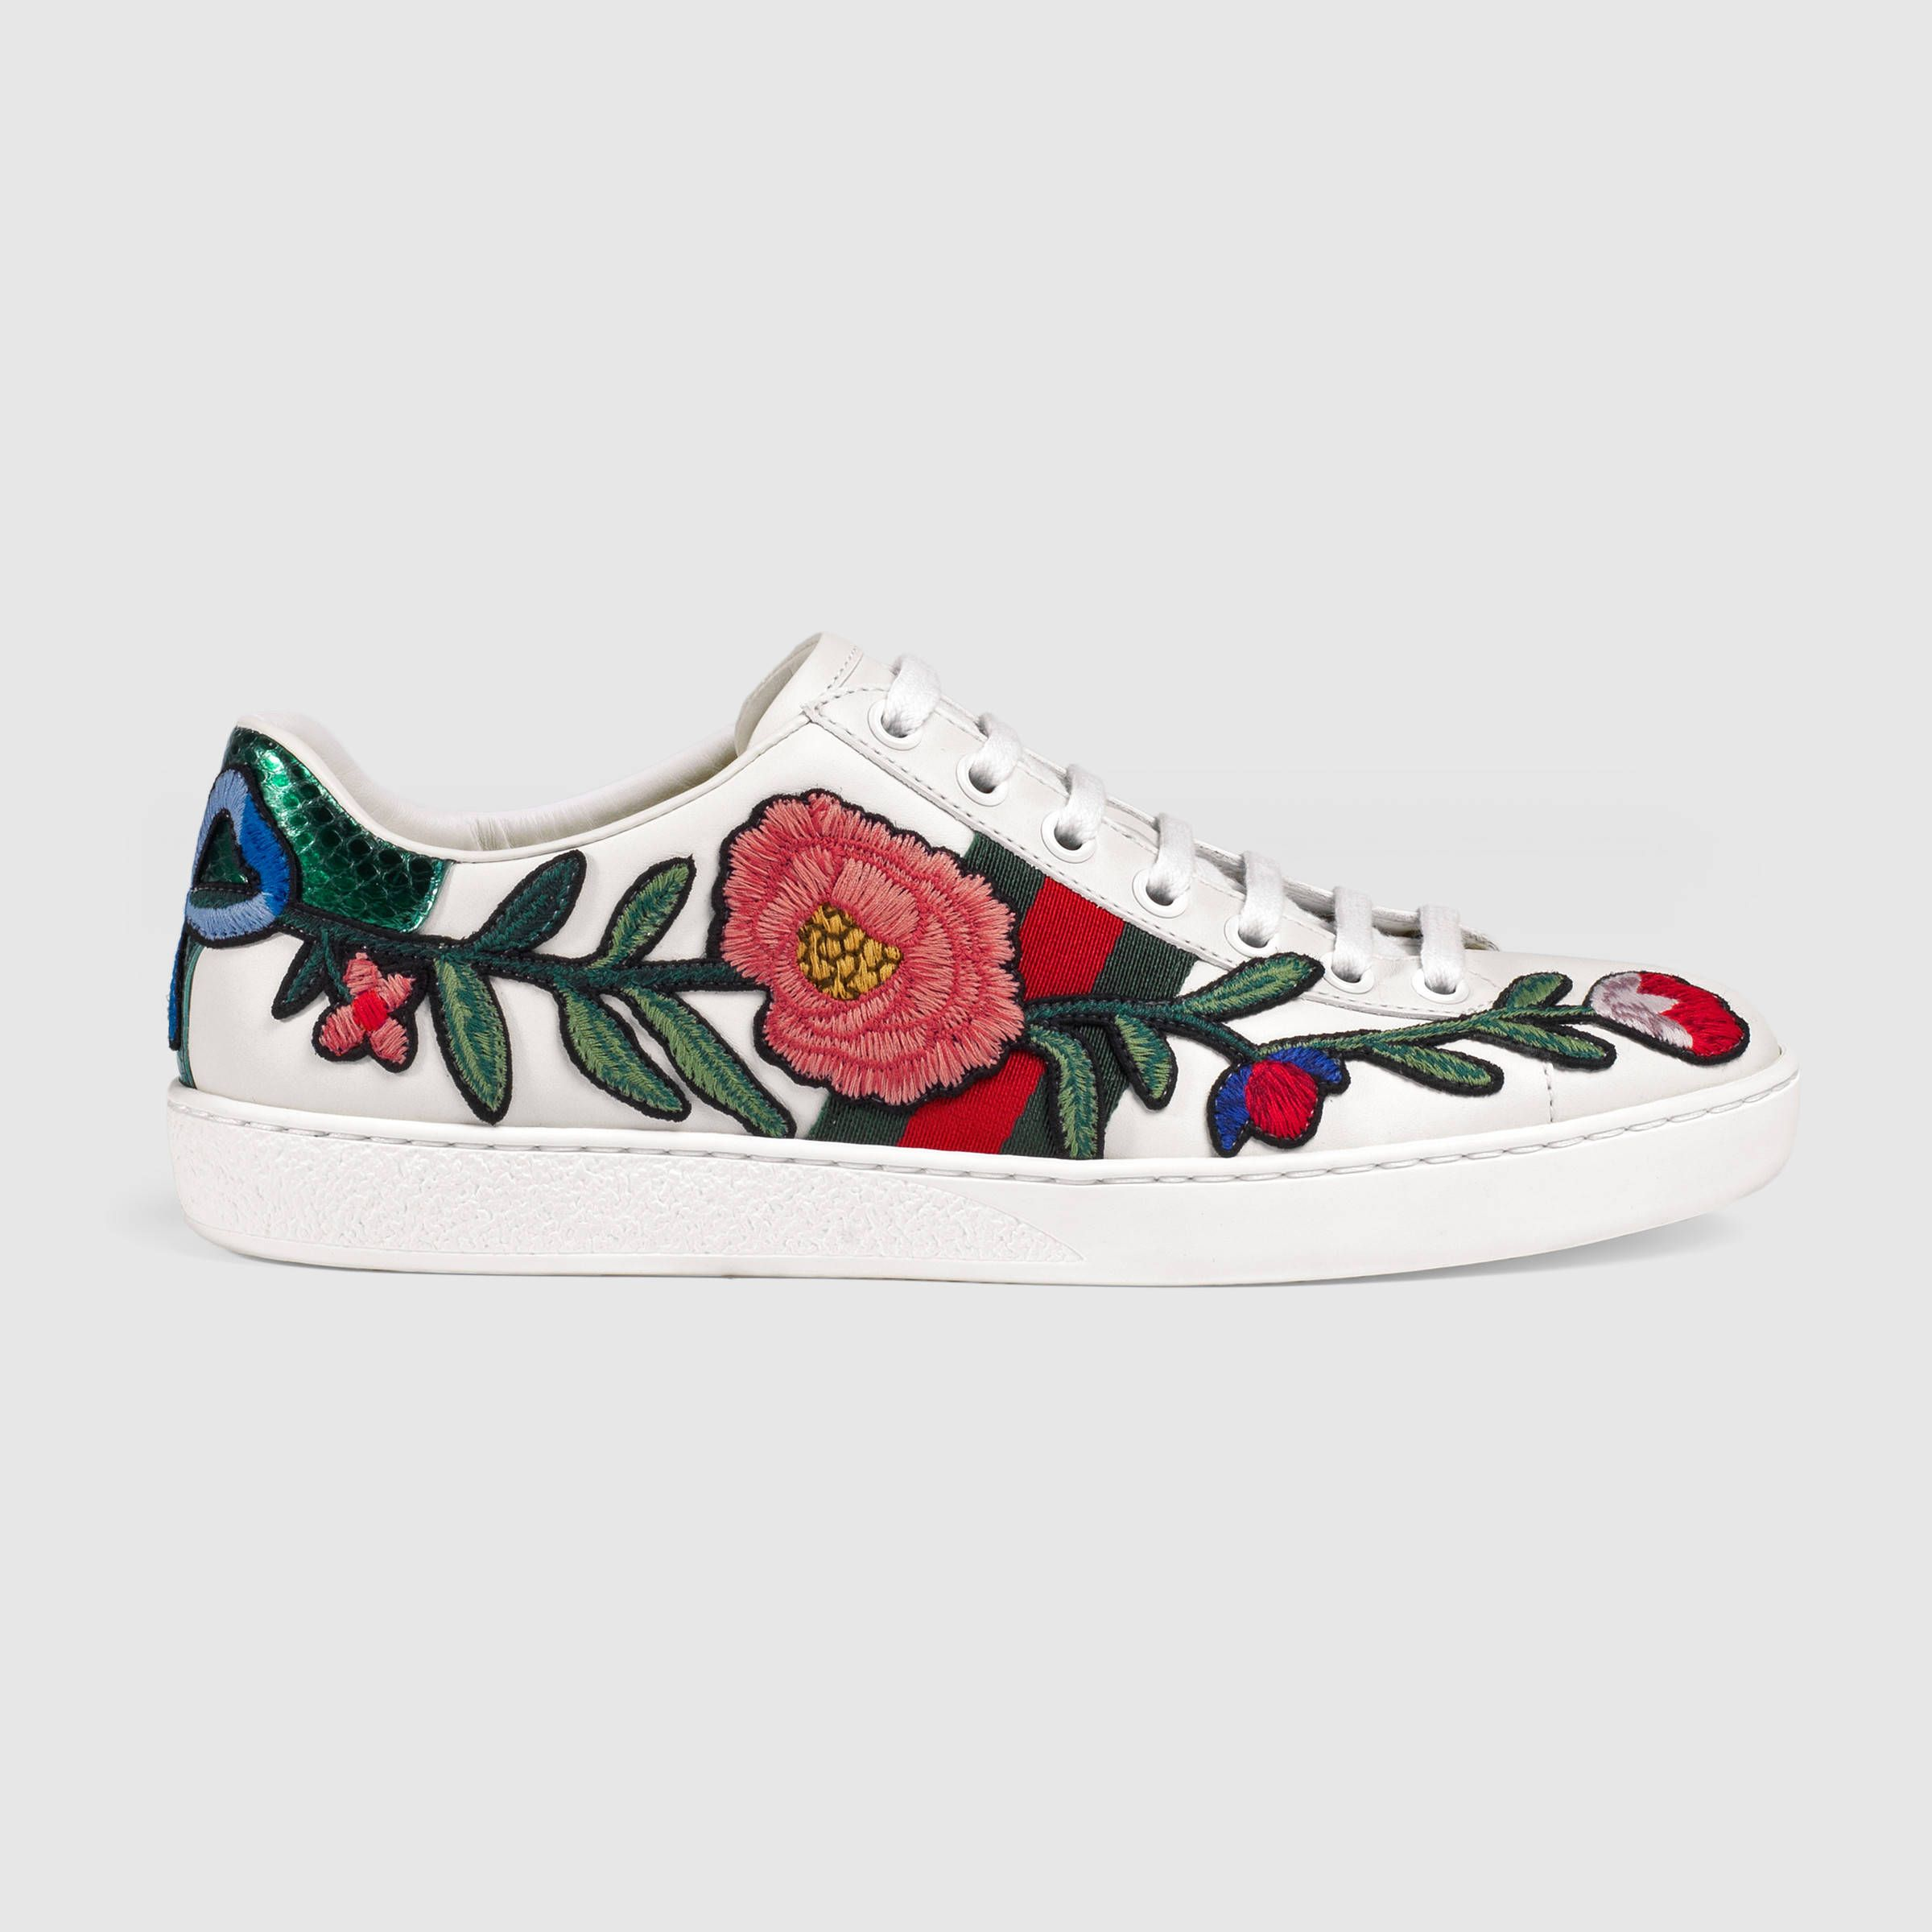 Gorgeous Gucci Embroidered Sneakers Sneakers Fashion Floral Sneakers Floral Shoes